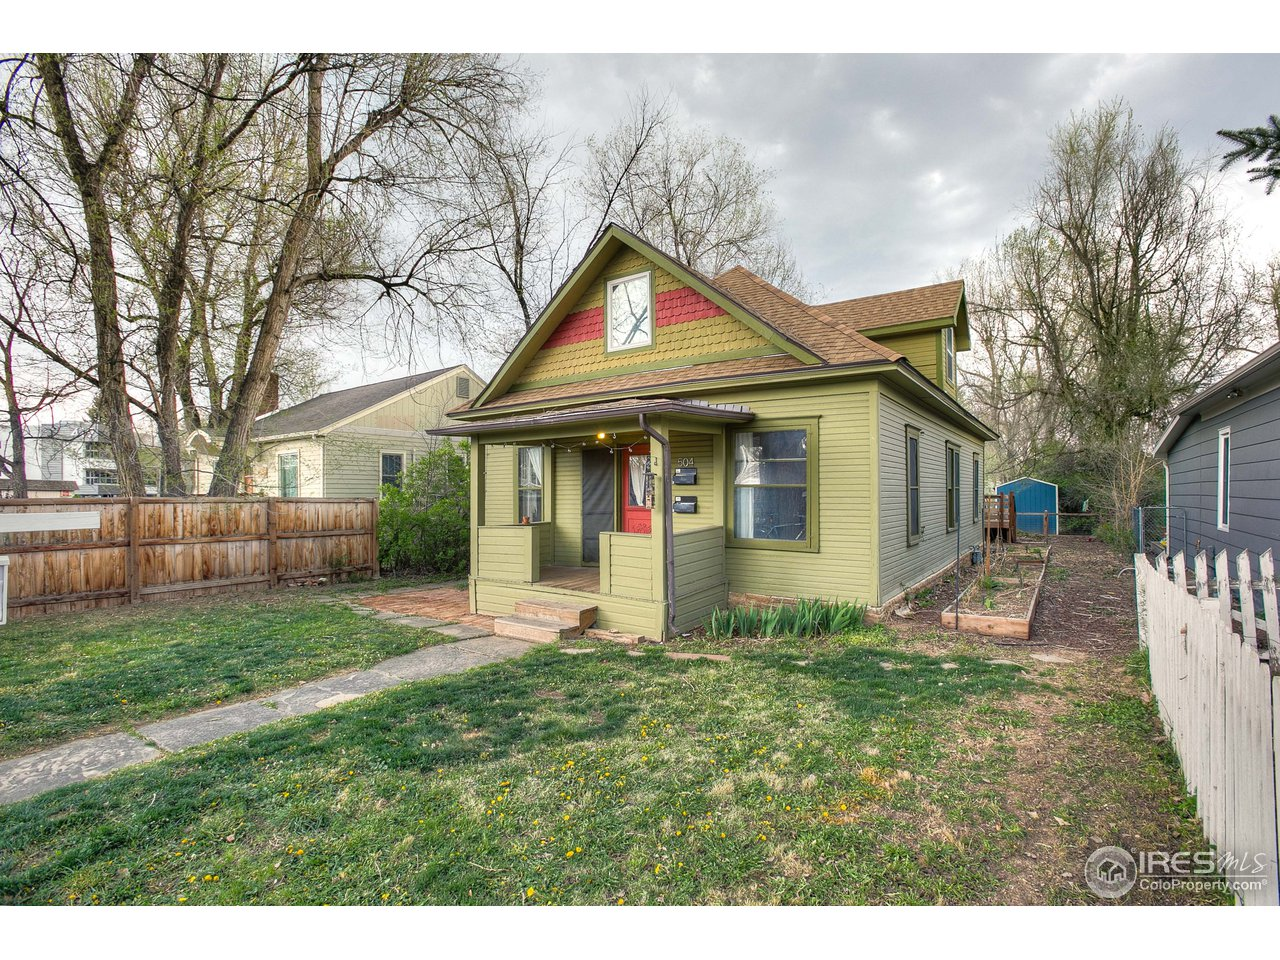 504 S Whitcomb St, Fort Collins CO 80521